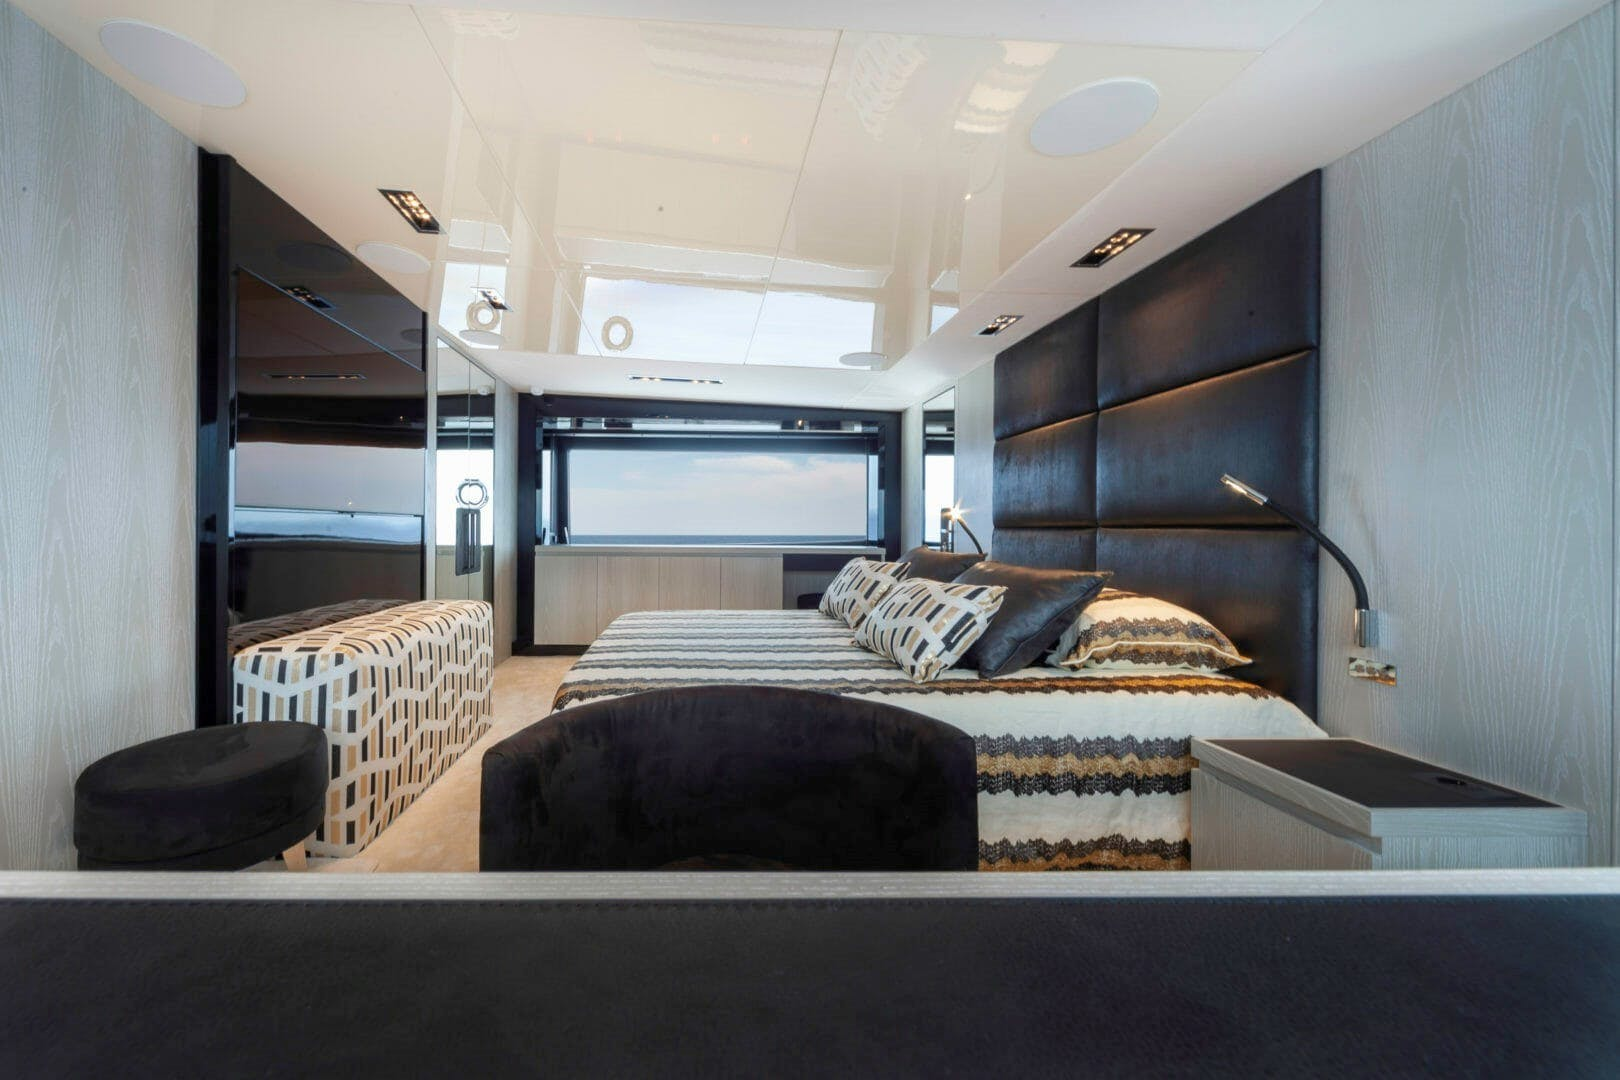 2019 PerMare 100' Motor Yacht     Picture 3 of 20